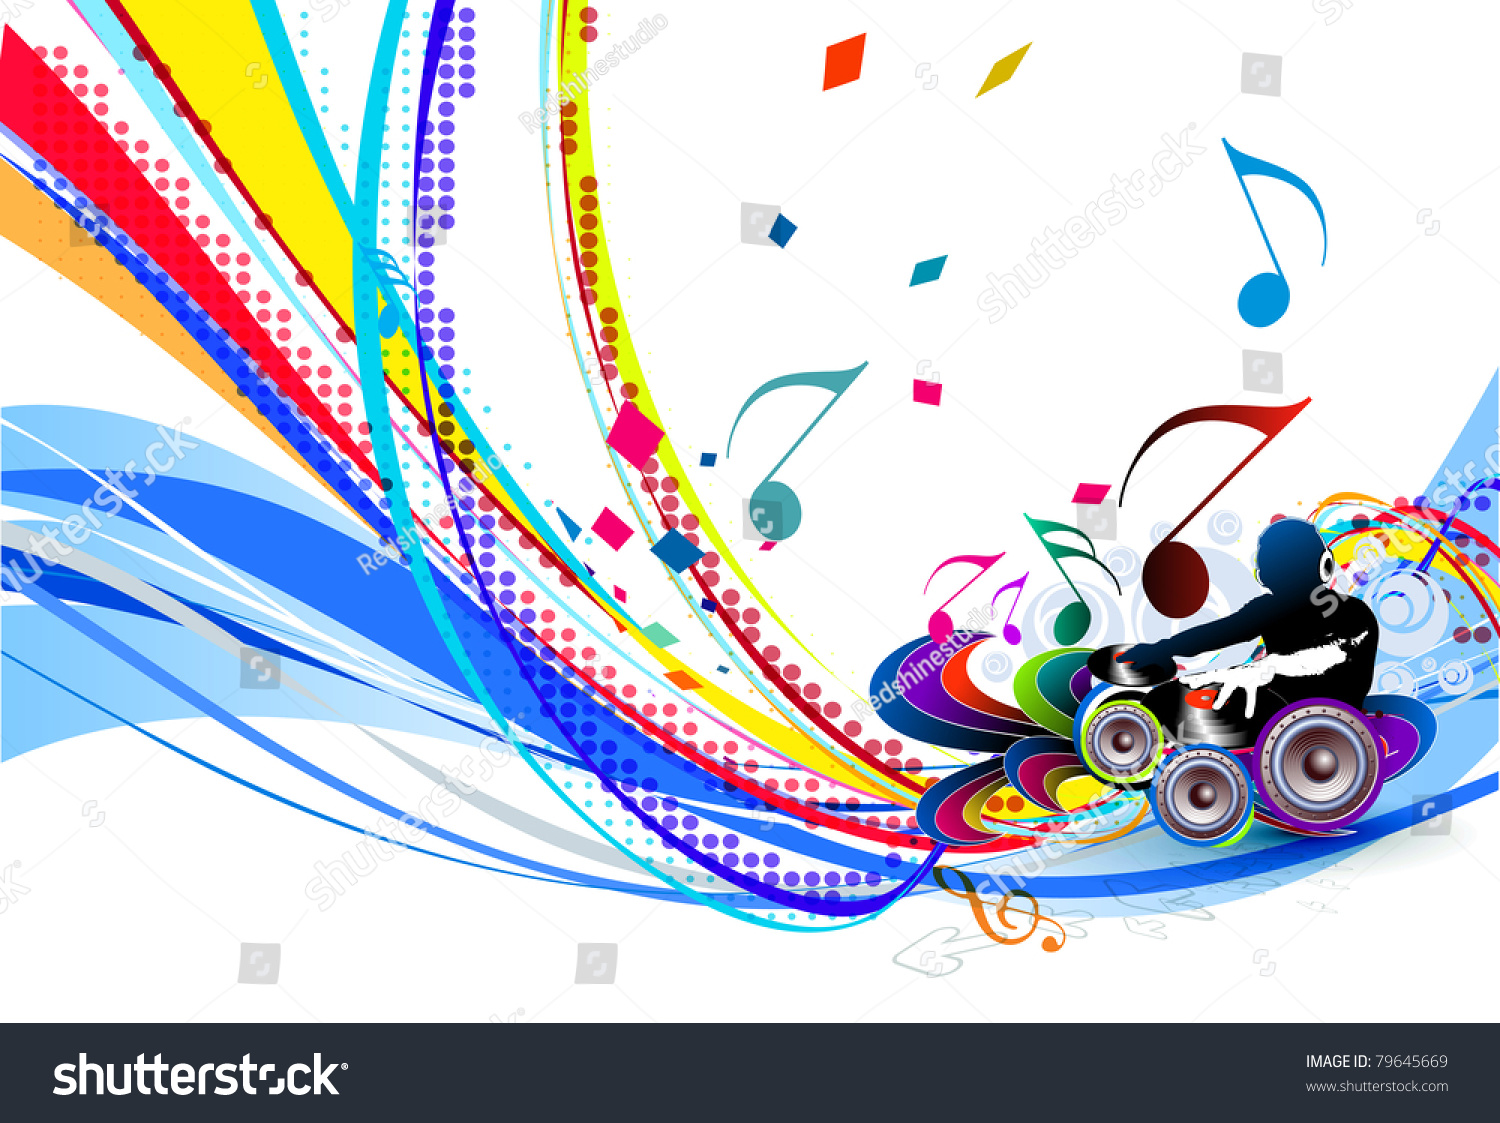 Abstract Vector Illustration Of An Dj Man Playing Tunes With Musics Note Background